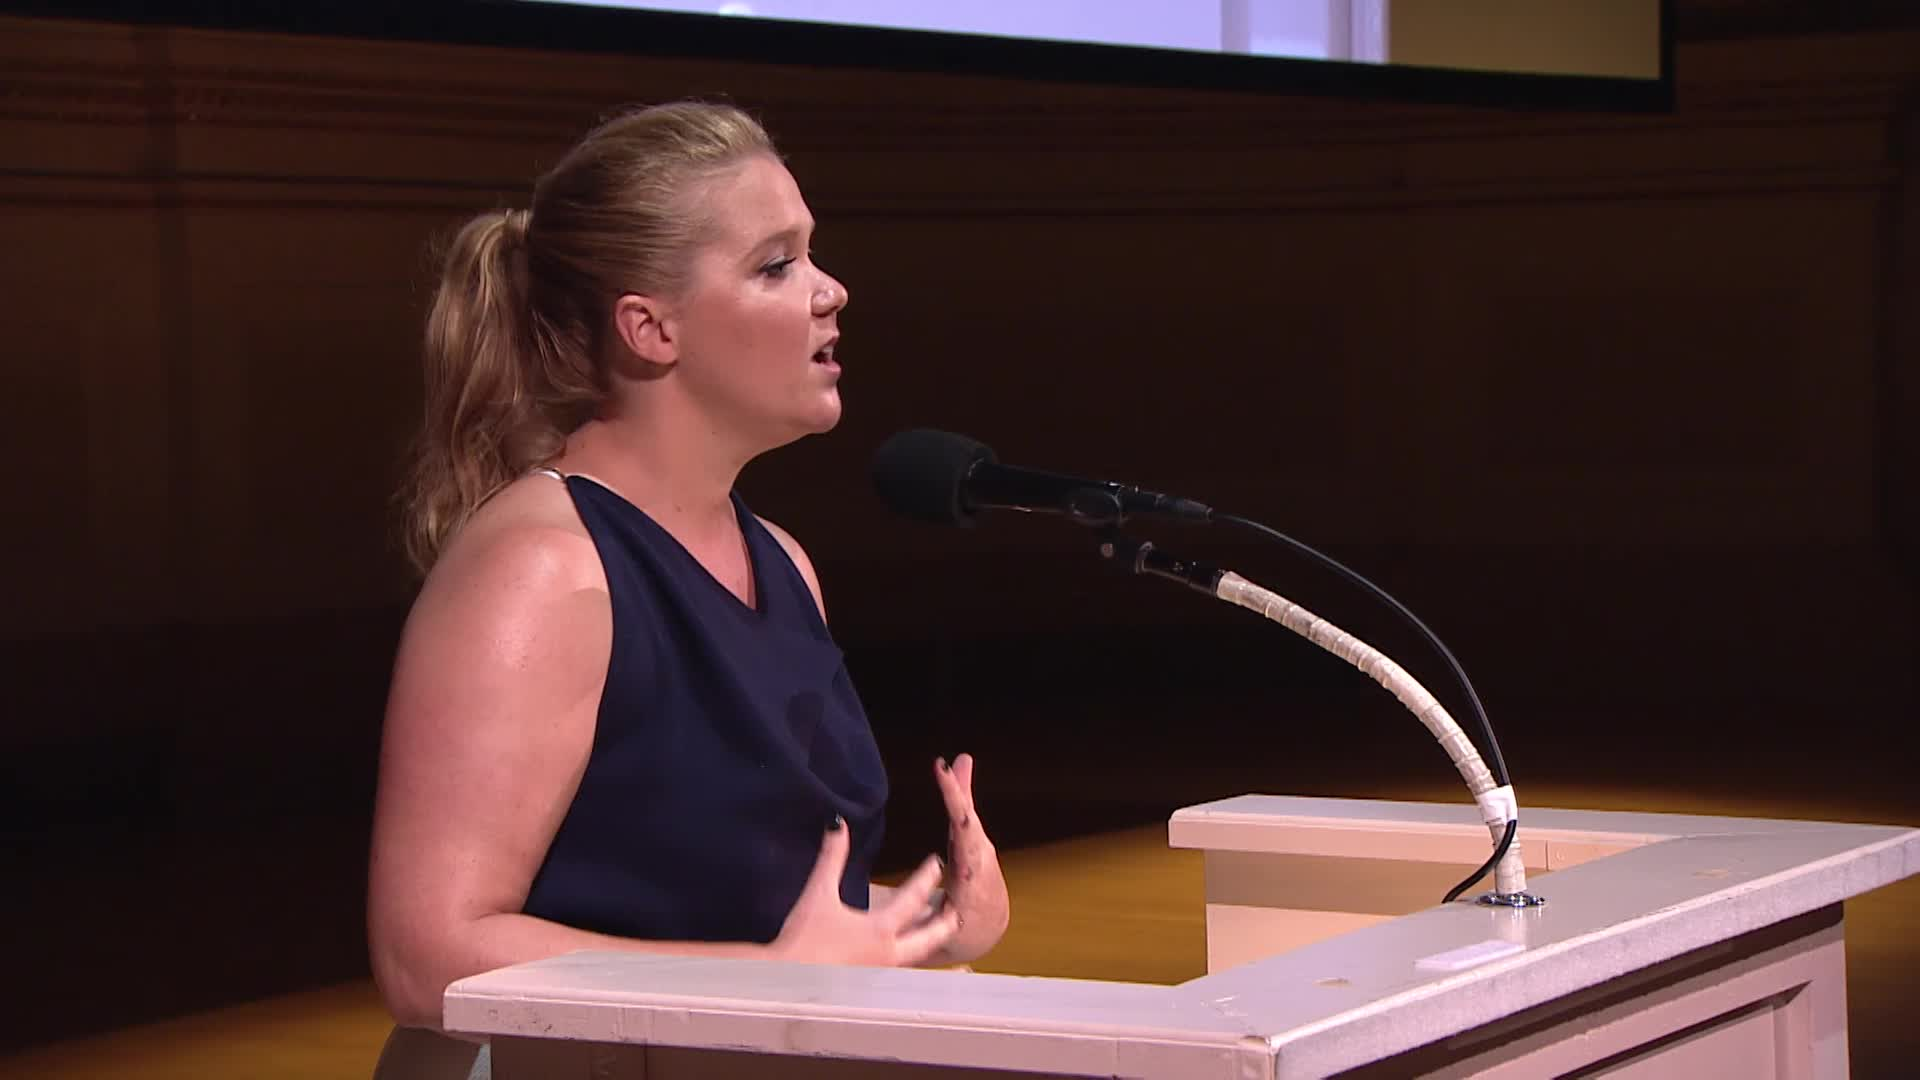 Actress and comedian Amy Schumer, CEO and President of Scholastic, Richard Robinson, Michelle Obama, Executive Director of Alliance for Young Artists & Writers, Virginia McEnerney, actor Ellie Kemper, actor artist Paul Chan, and Allison Williams (Girls & Get Out) address students and their families and teachers at the National Ceremony for the 2017 Scholastic Art & Writing Awards held at Carnegie Hall, New York, N.Y., Thursday, June 8, 2017.